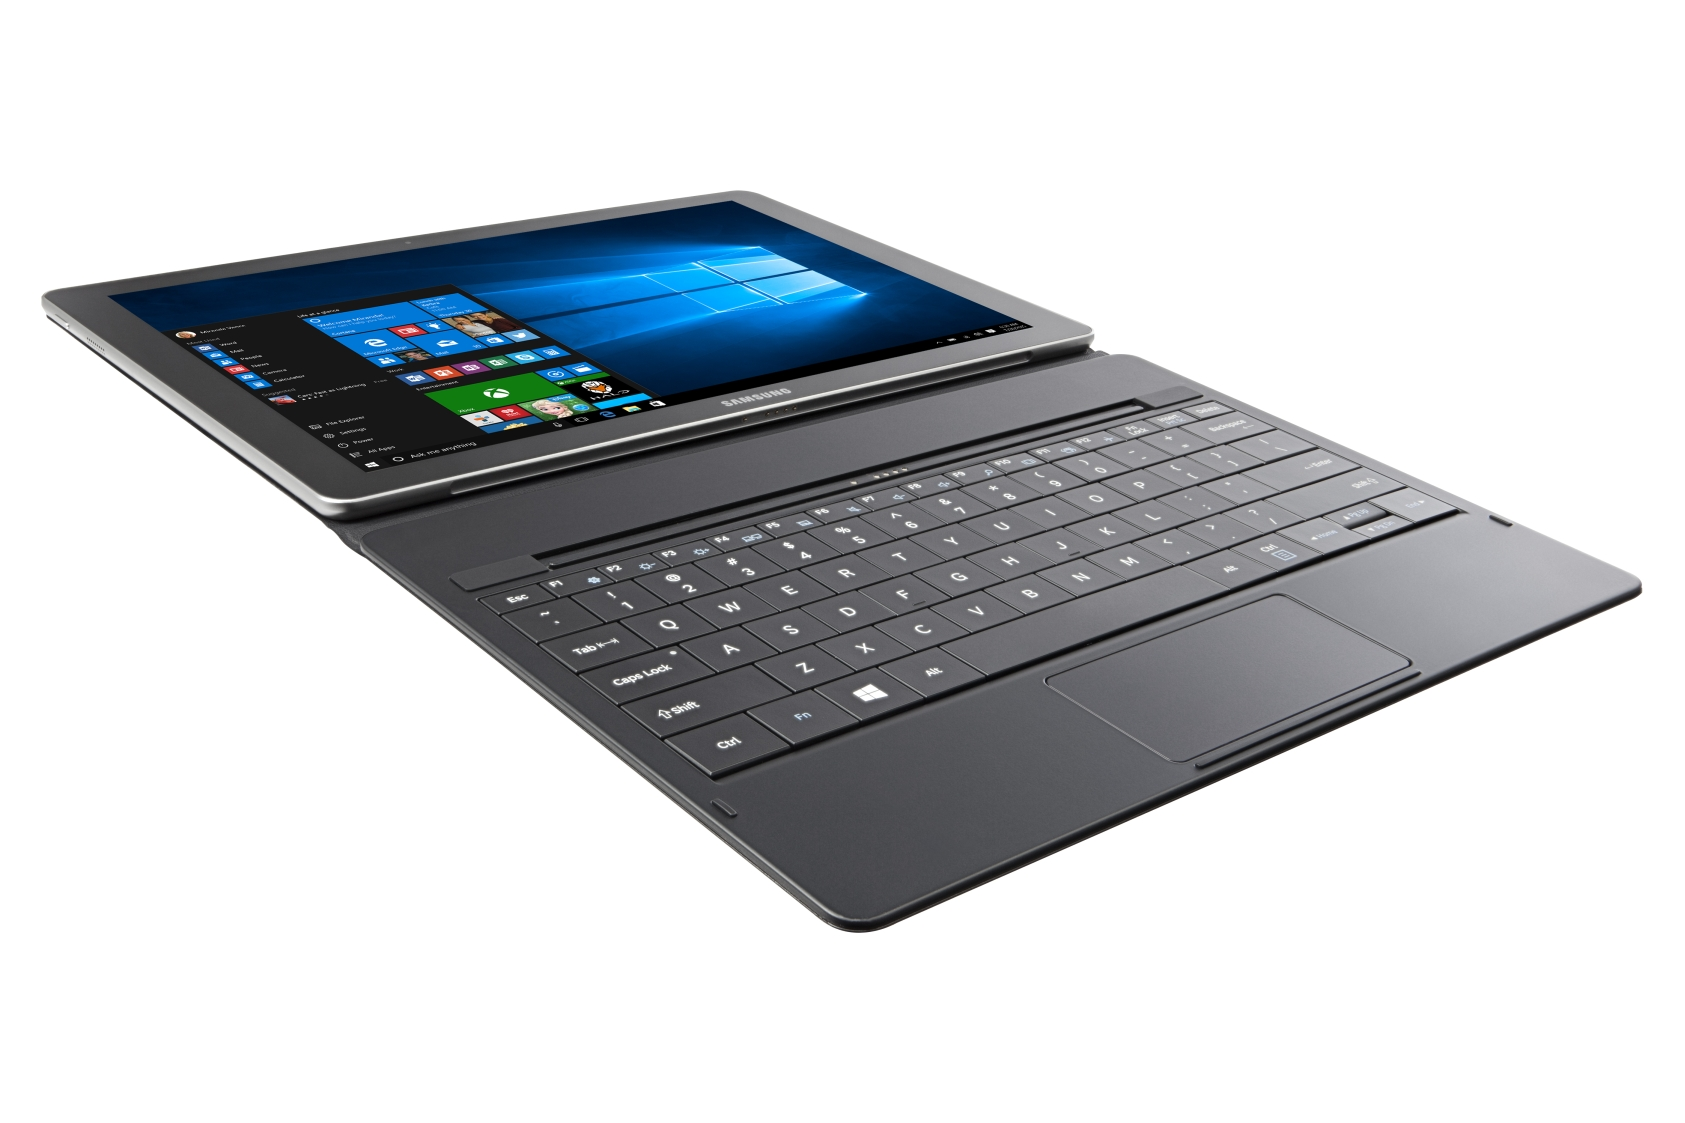 Samsung Galaxy TabPro S SMW700 Windows 10 2In1 Unveiled